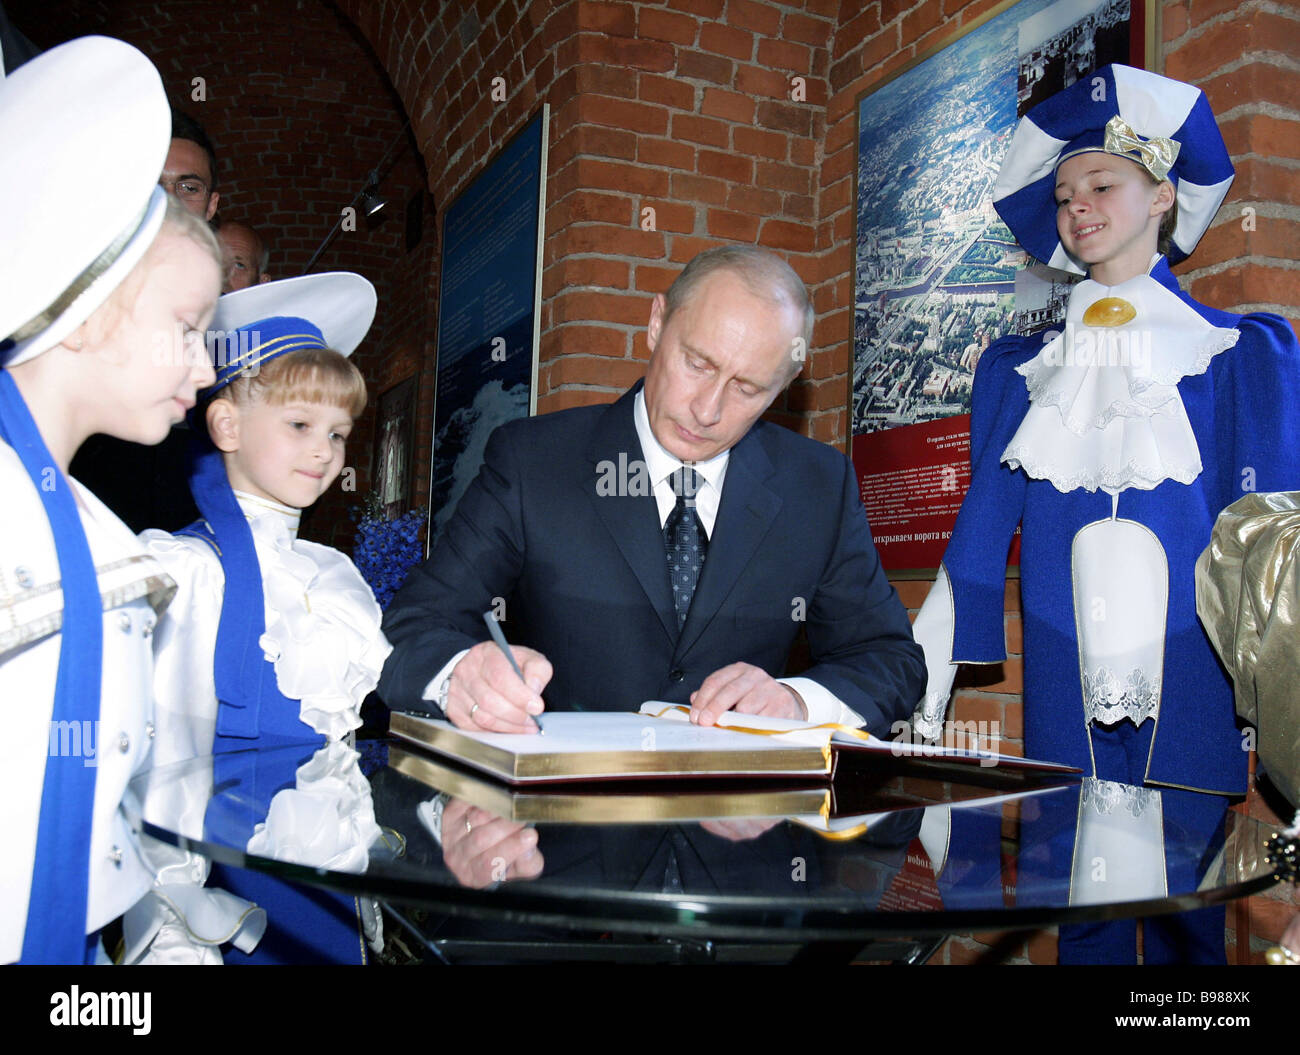 Russian President Vladimir Putin signing the book of guests of honor at the Kremlin gate museum - Stock Image